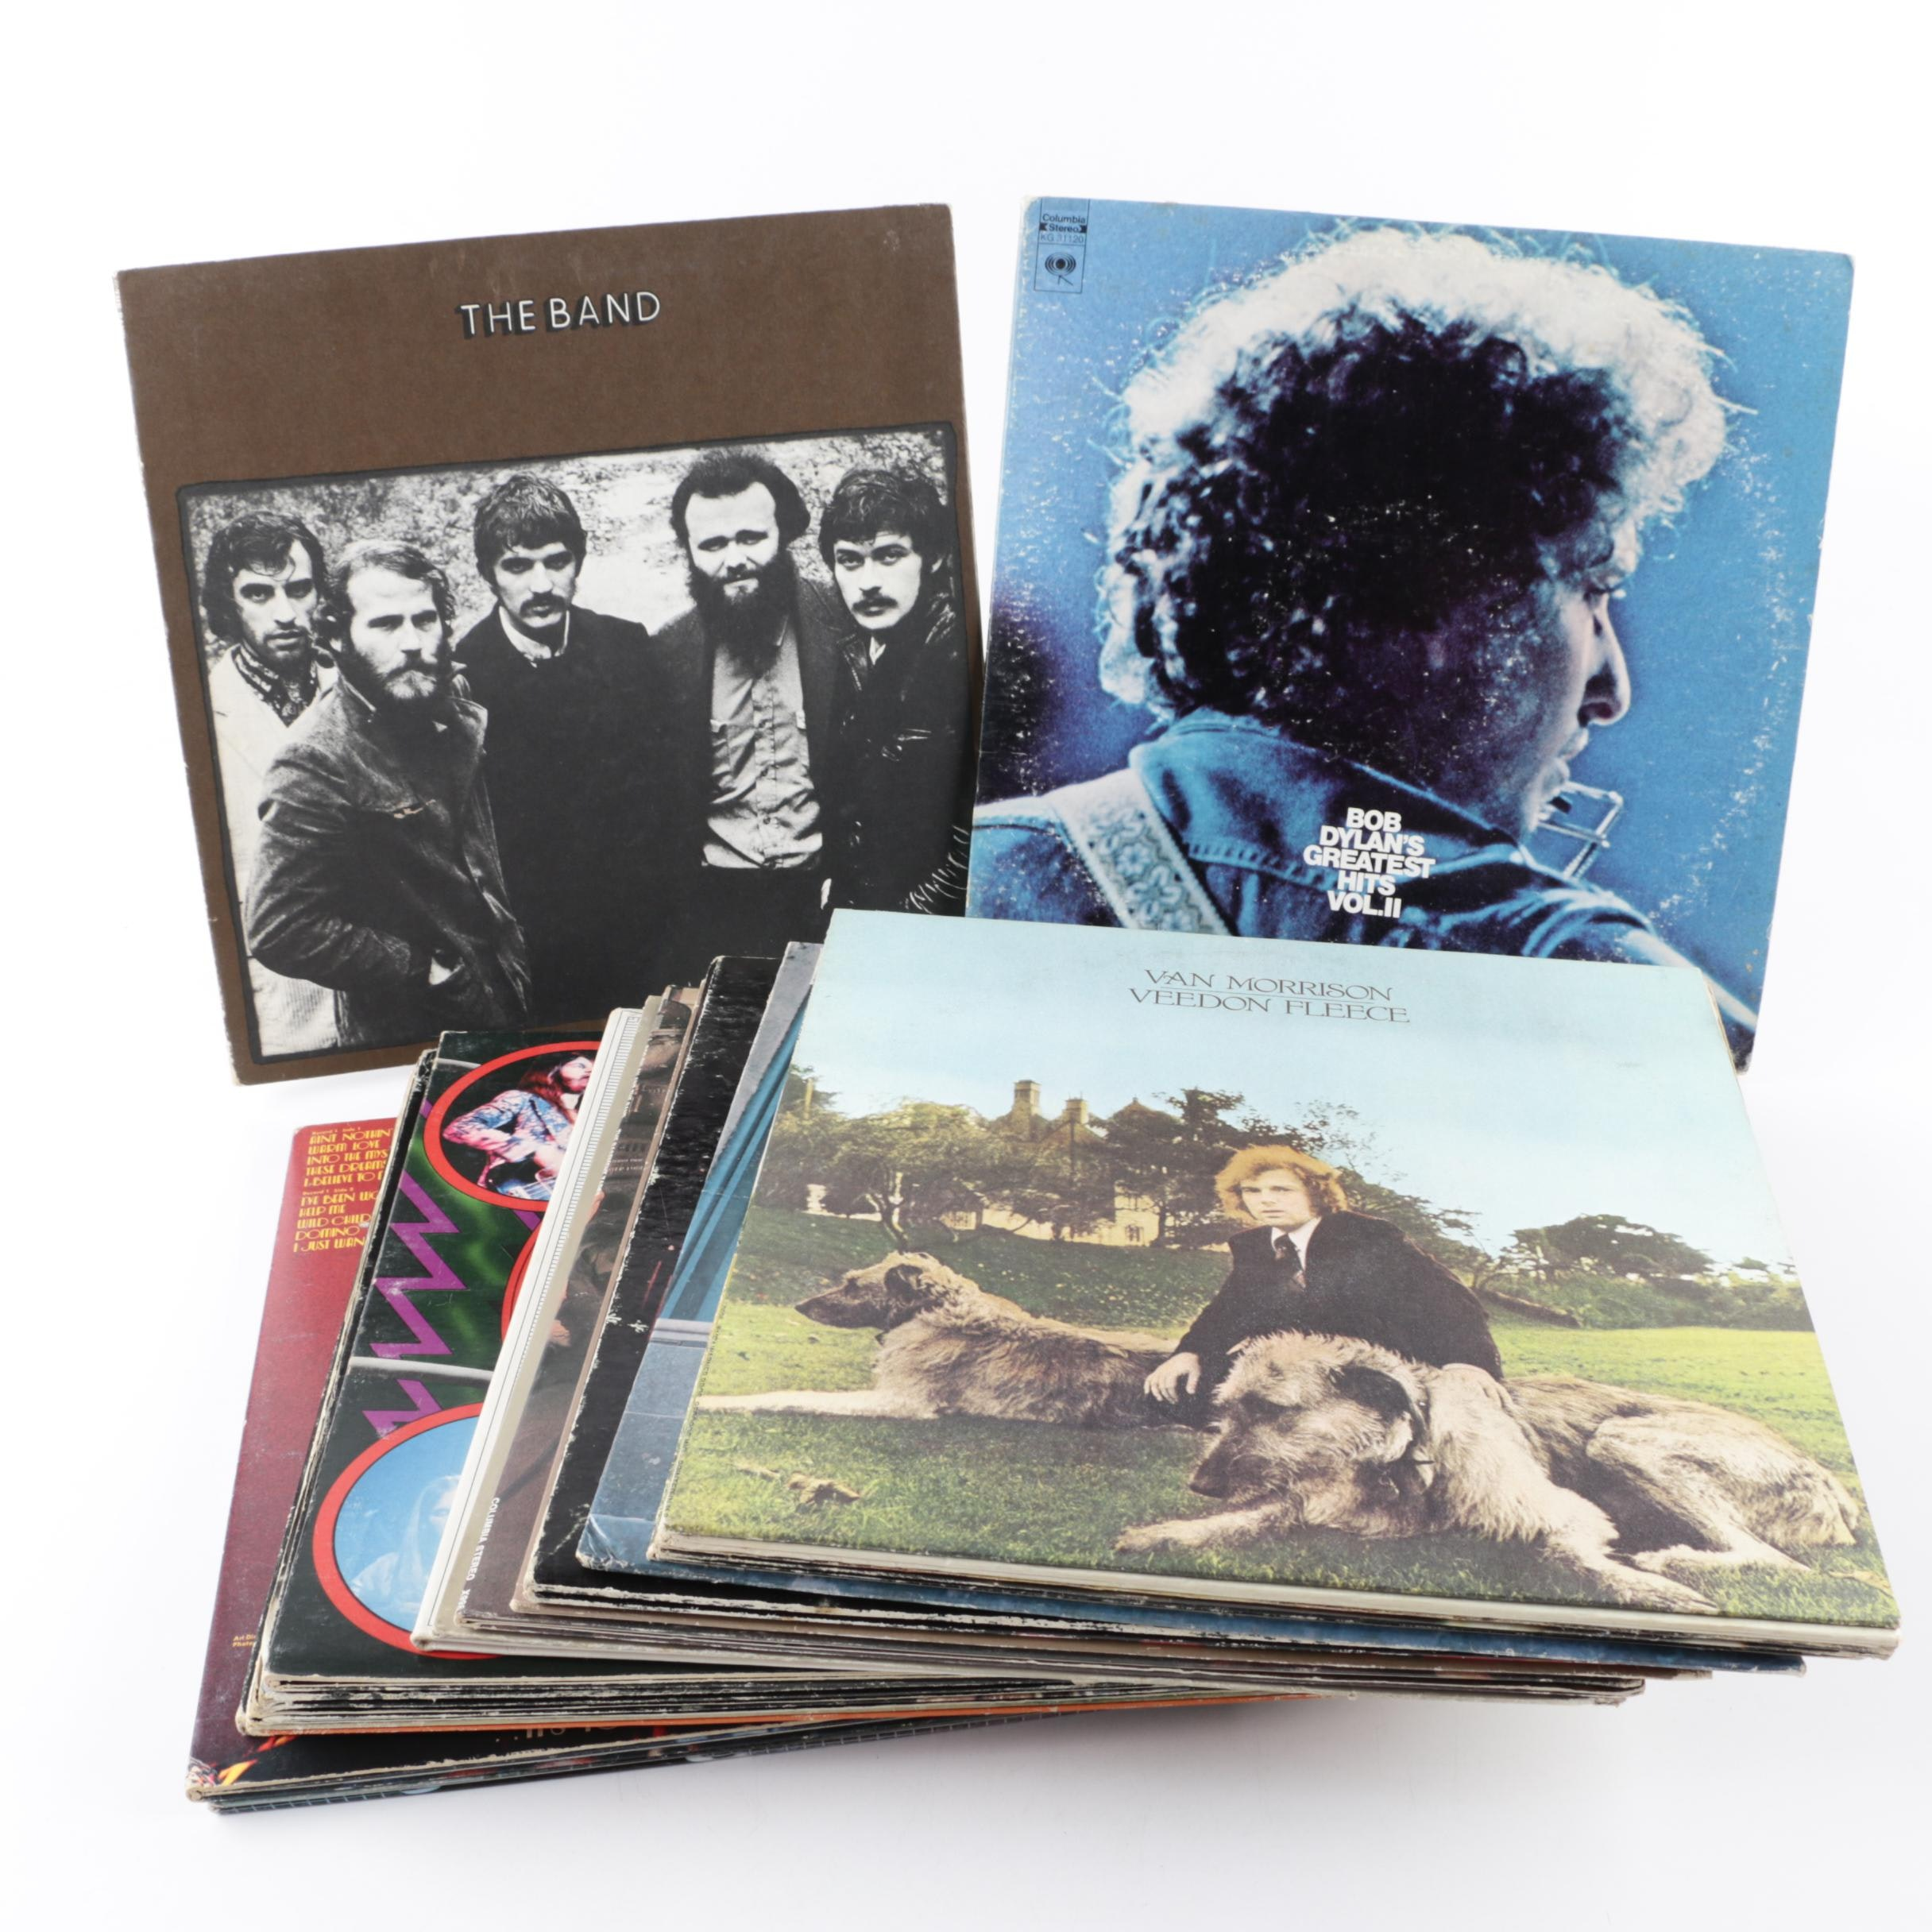 Van Morrison, Bob Dylan, The Band, and Other Rock, Pop and Folk Records